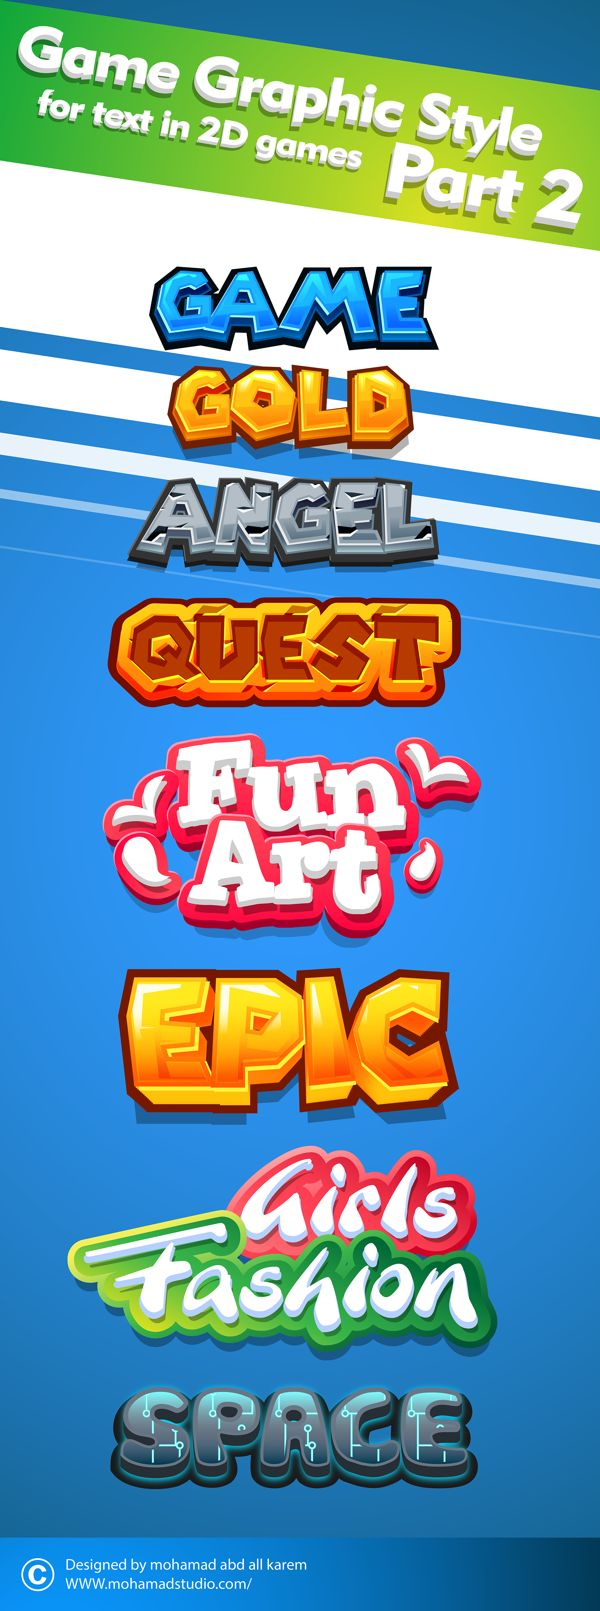 best ideas about game logo game ui mobile game 334572992332593 plate online order get this template now and make any logo for any game in secondscreate any shape and make them in your logo easy and fastthe set